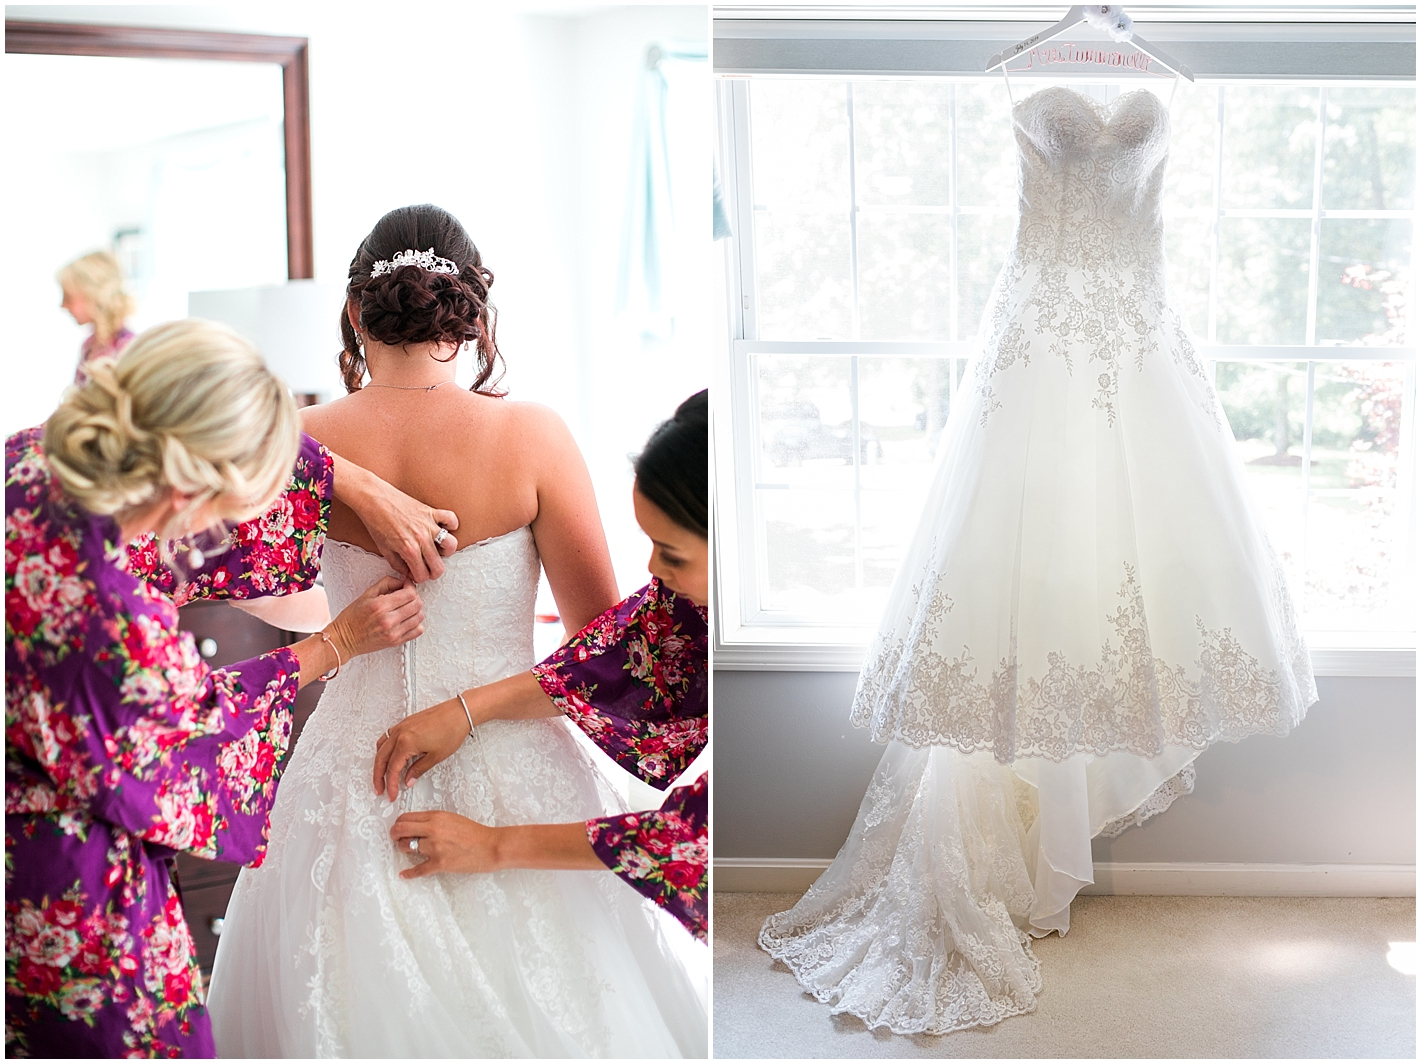 A line wedding dress photos by Alyssa Parker Photography